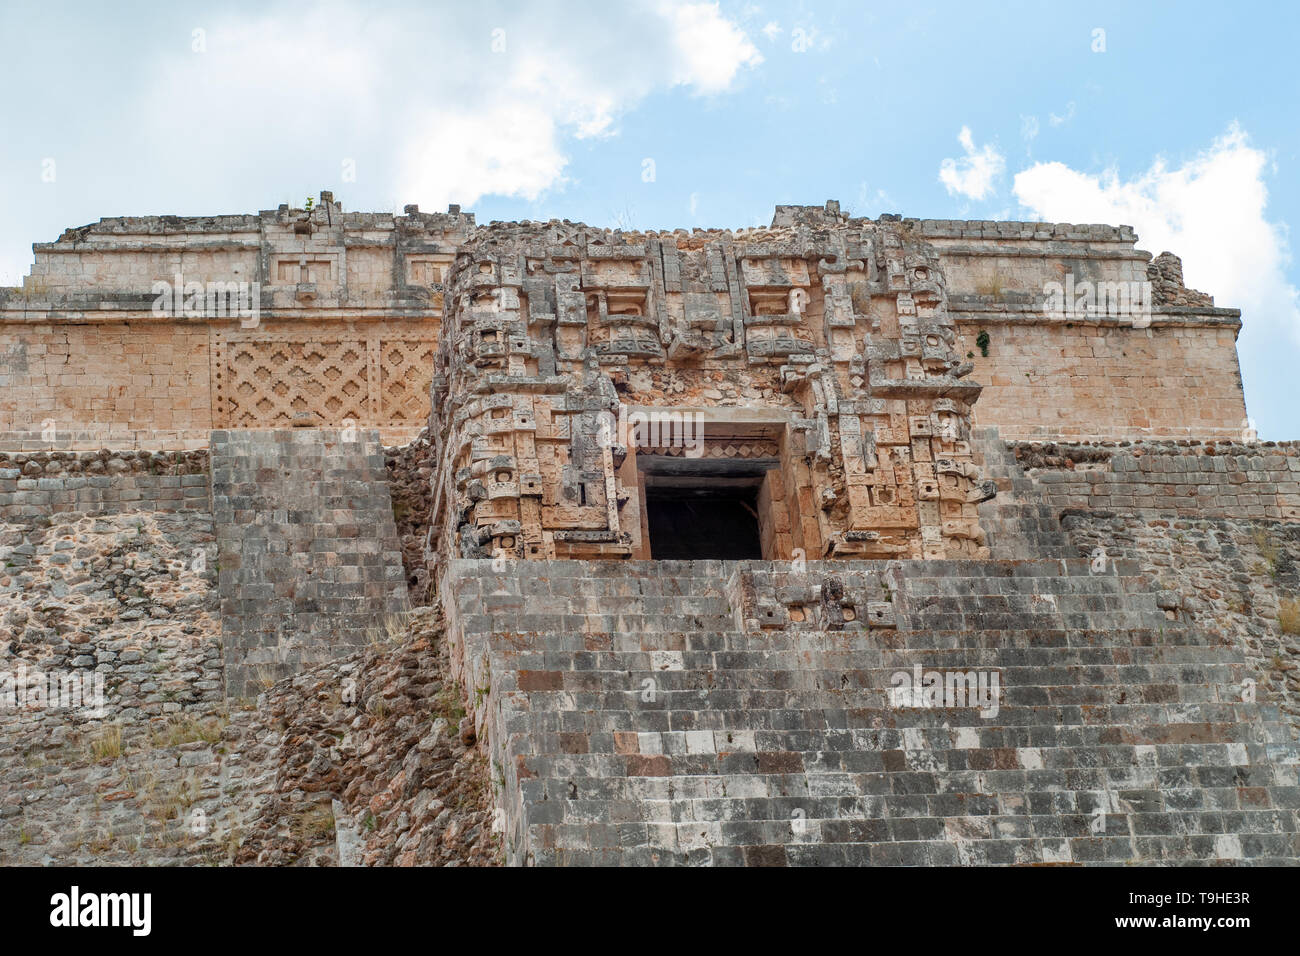 Details of the sculpted top of the Mayan pyramid, of the archaeological area of Ek Balam, on the Yucatan peninsula - Stock Image